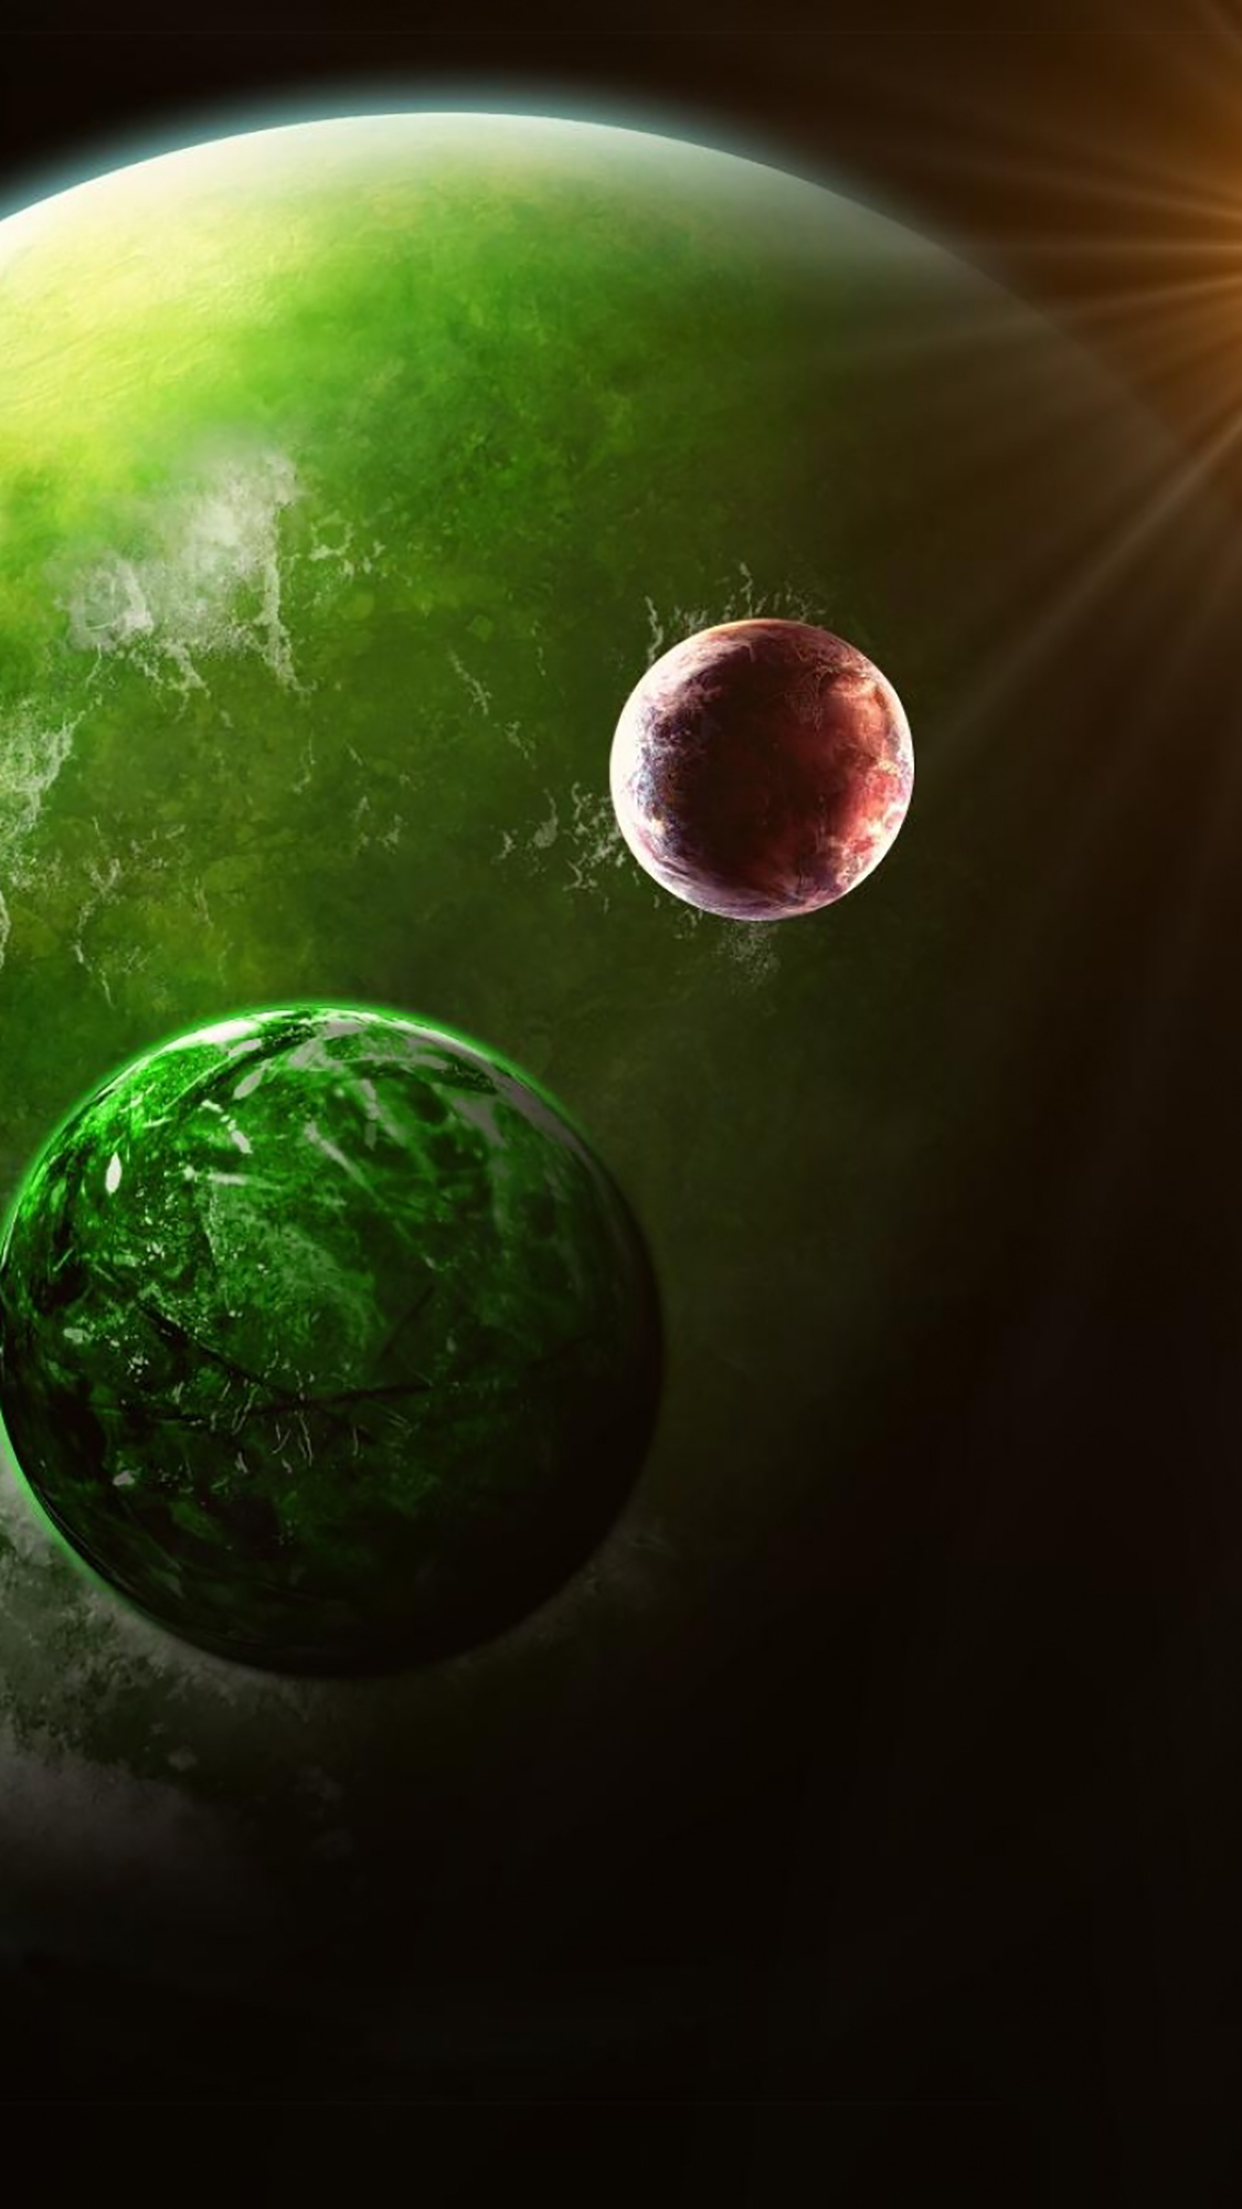 Planet 2 3Wallpapers iPhone Parallax Planet : 2